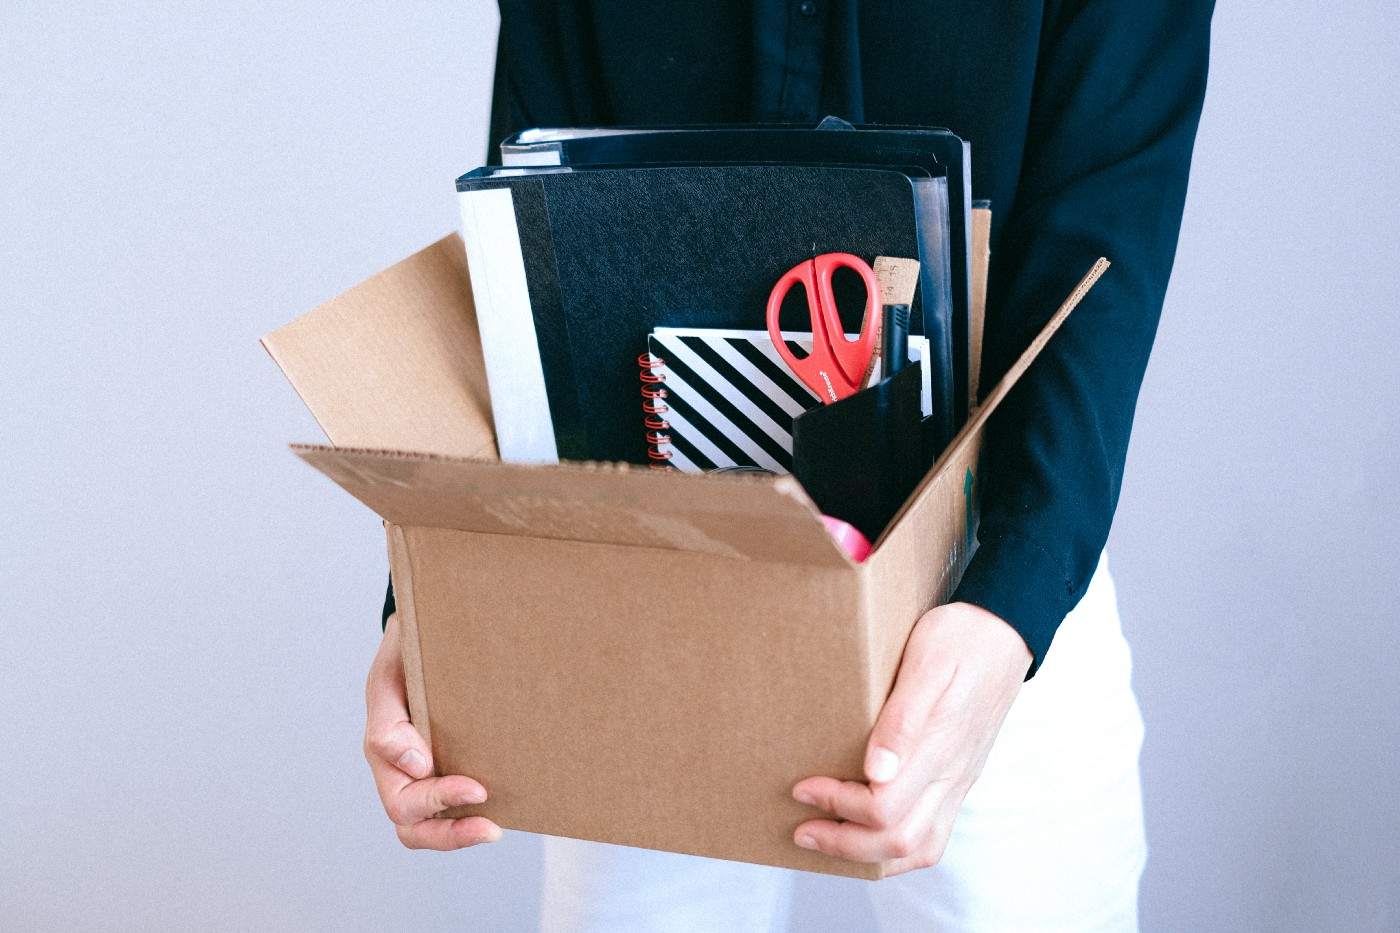 Torso of a female in white slacks and a navy shirt holding a cardboard box full of office supplies